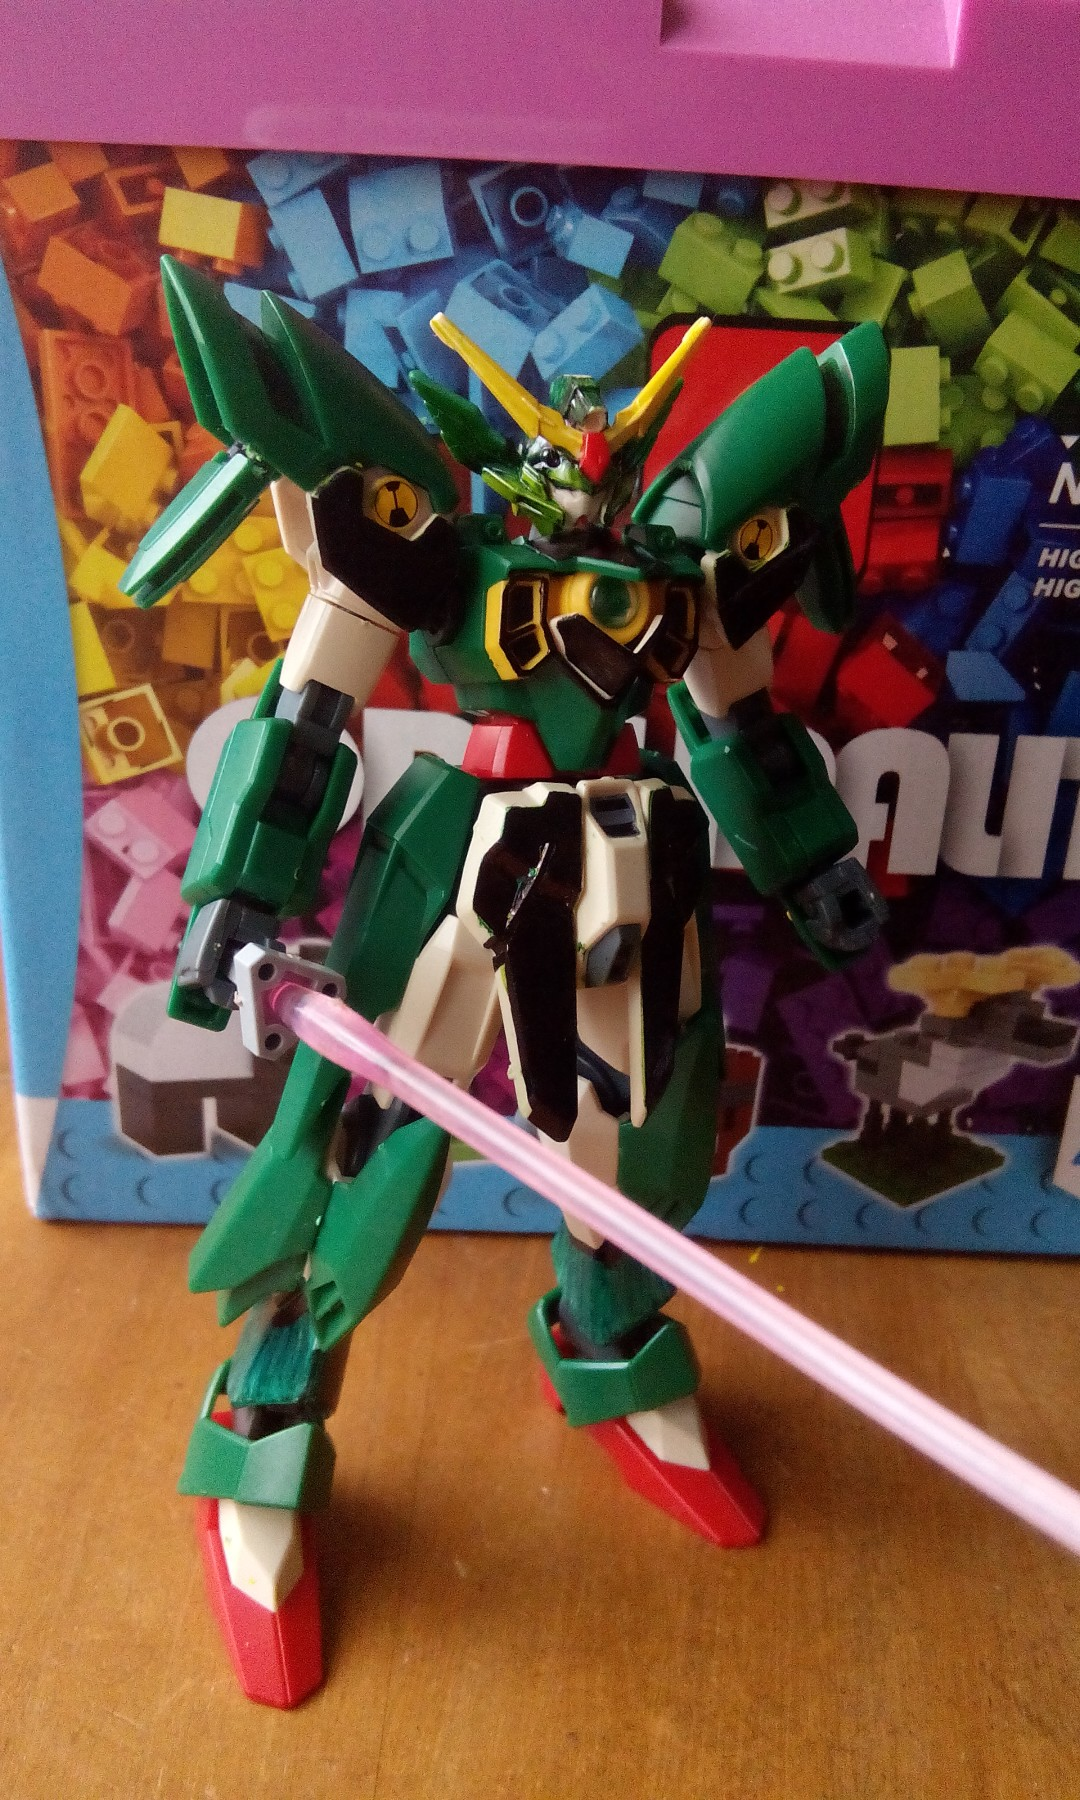 14+ Wing Gundam Fenice Rinascita Hg Wallpapers